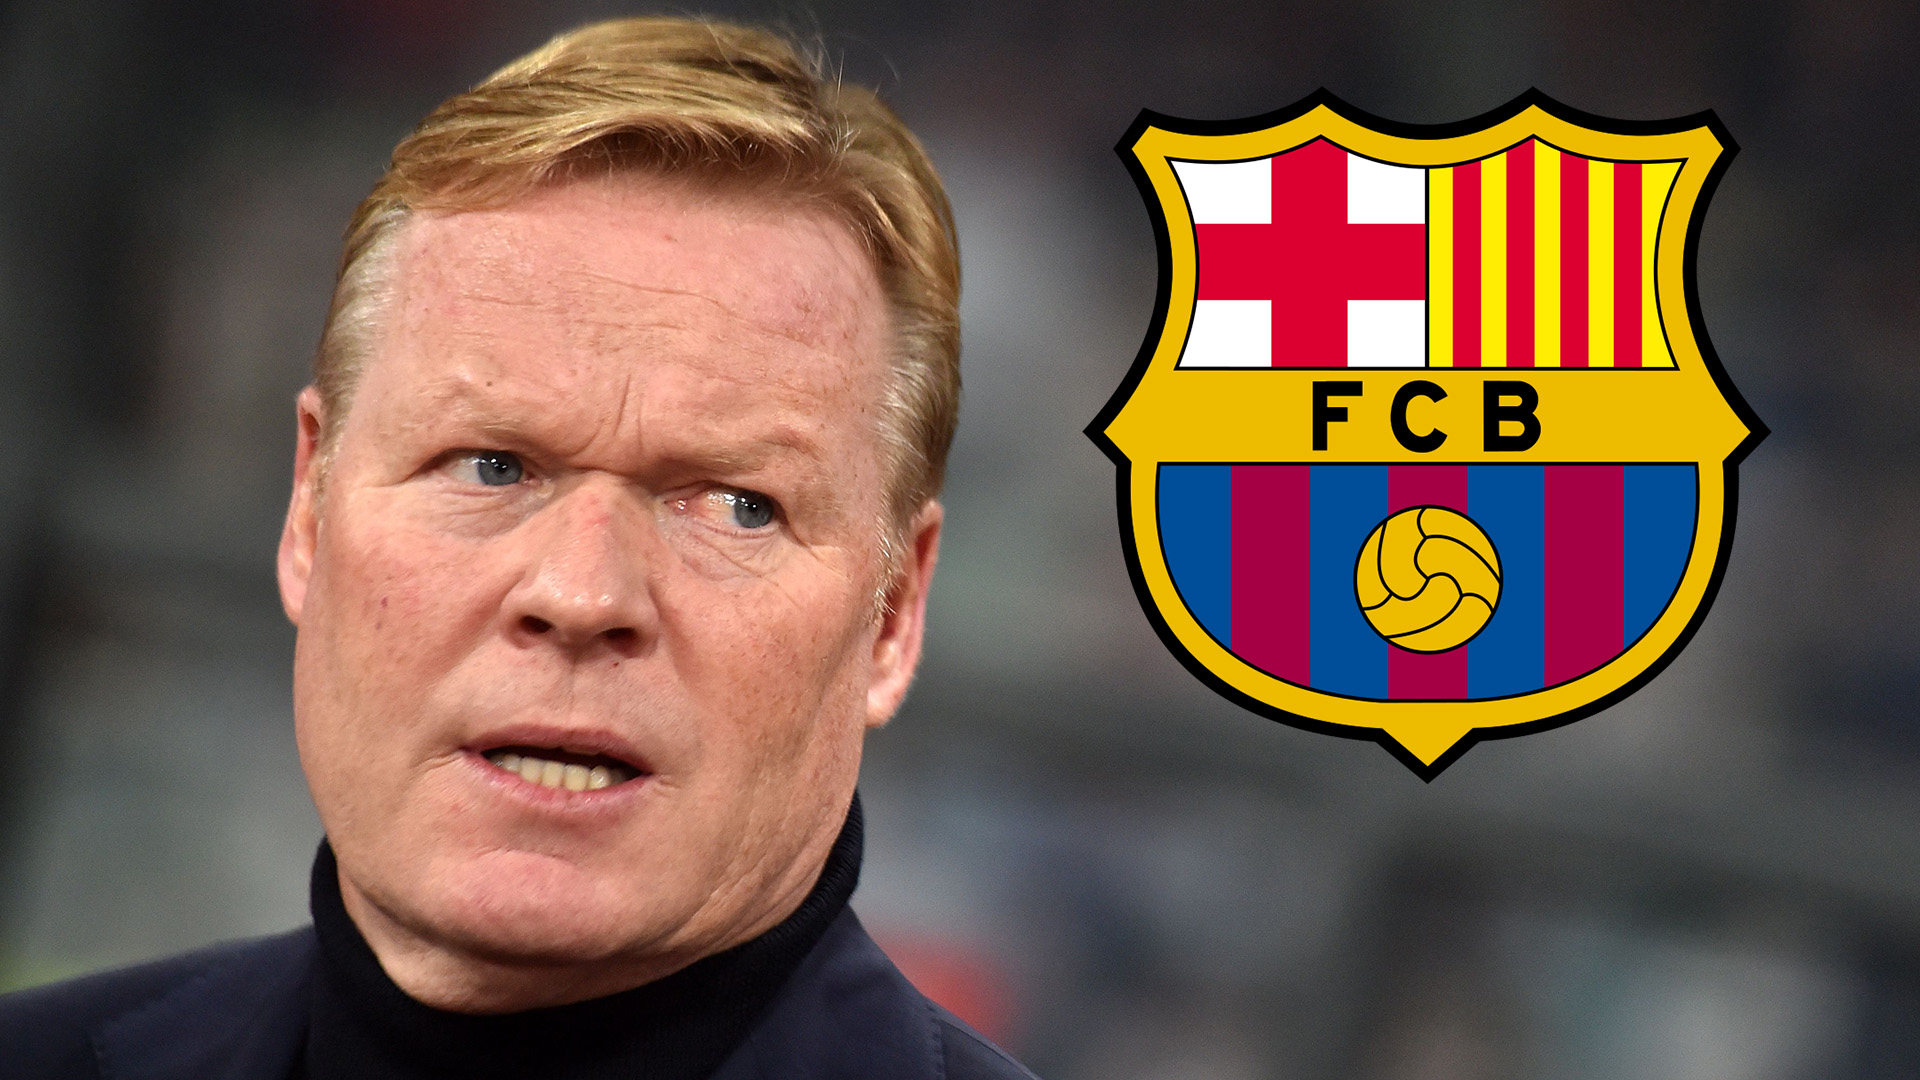 FC Barcelona coach Ronald Koeman on Saturday said his side could play a different style of football to which the club's fans are used to this season. His comments came after his side earned an underwhelming 3-1 win over Gimnastic de Tarragona in a pre-season friendly on Saturday. The Dutchman lined up with a 4-2-3-1 […]